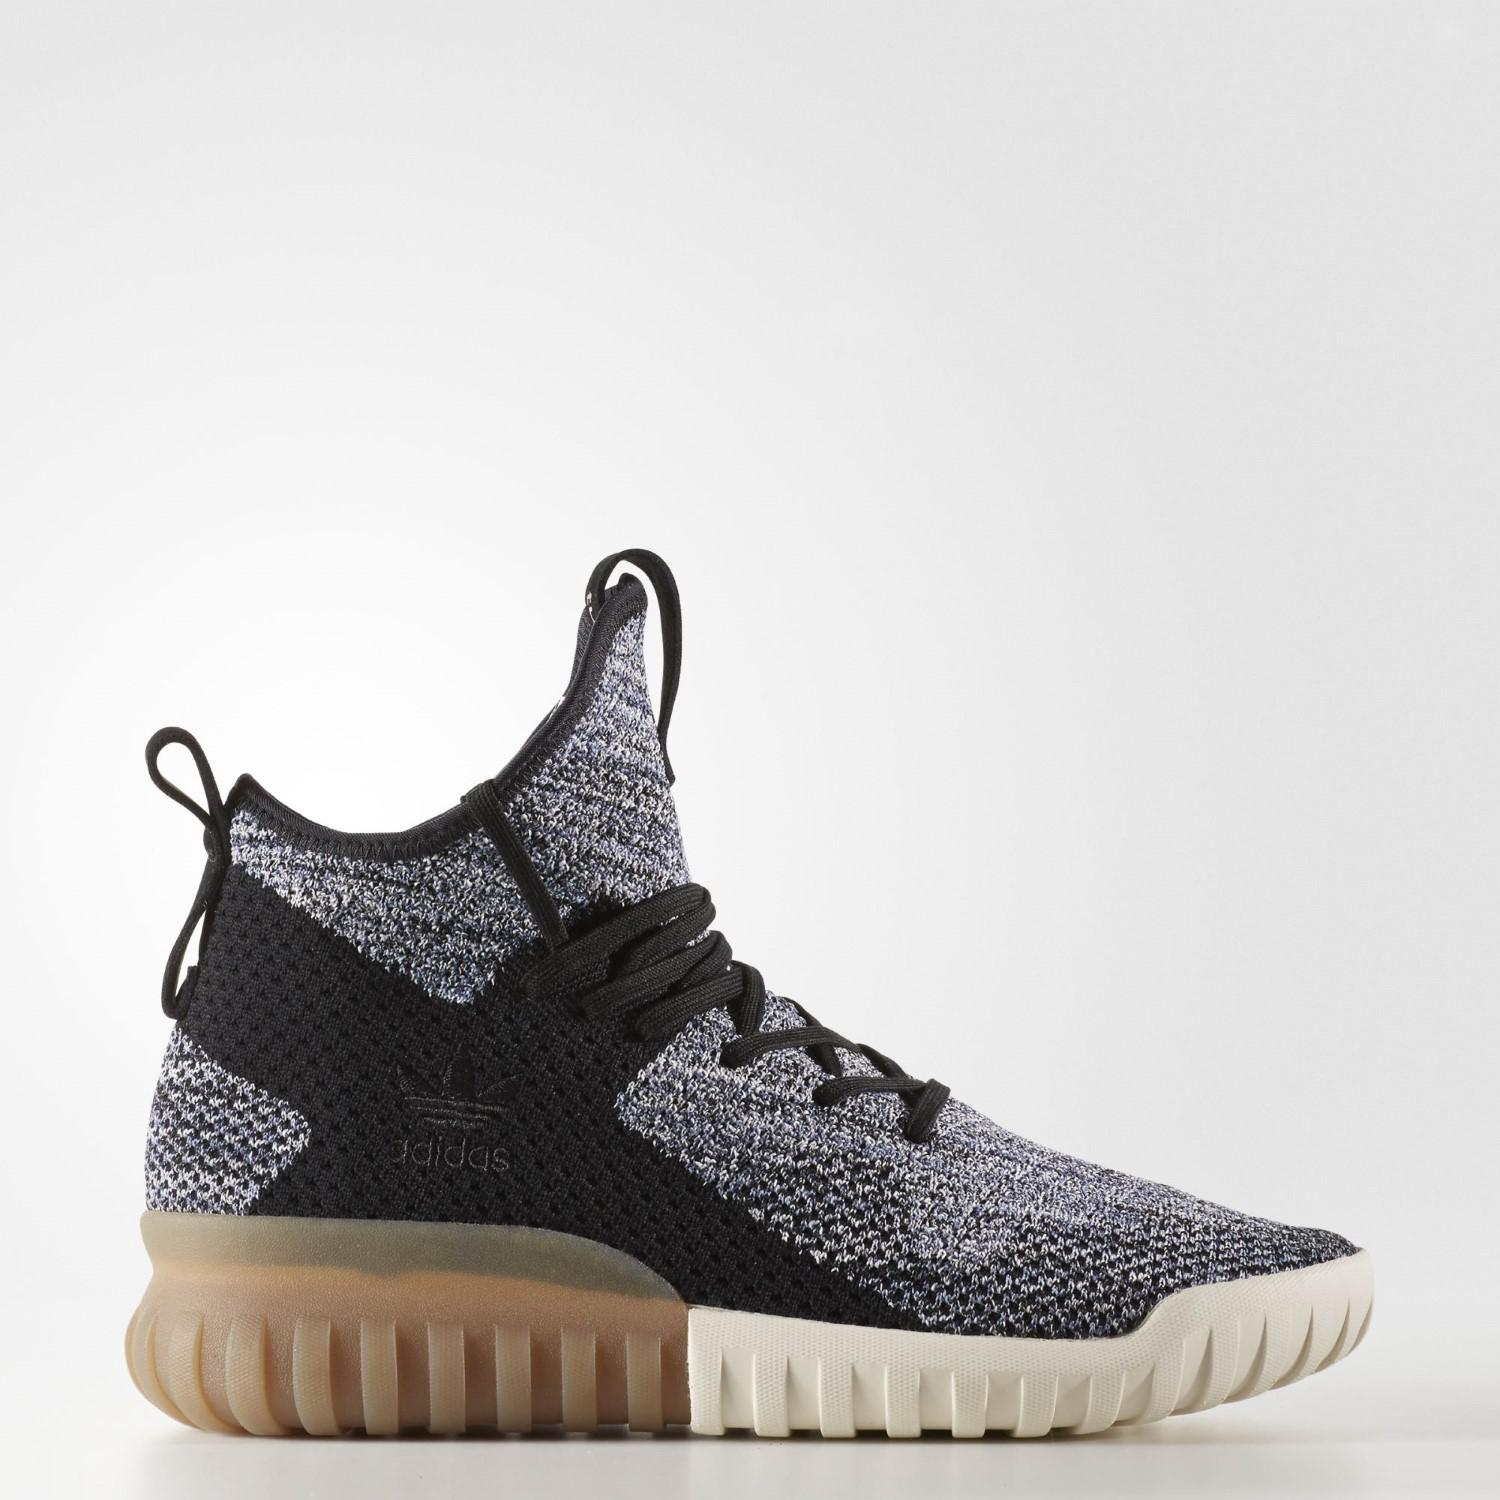 hot sale online 60e2f 5d05c adidas-originals--Tubular-X-Primeknit-Shoes.jpeg